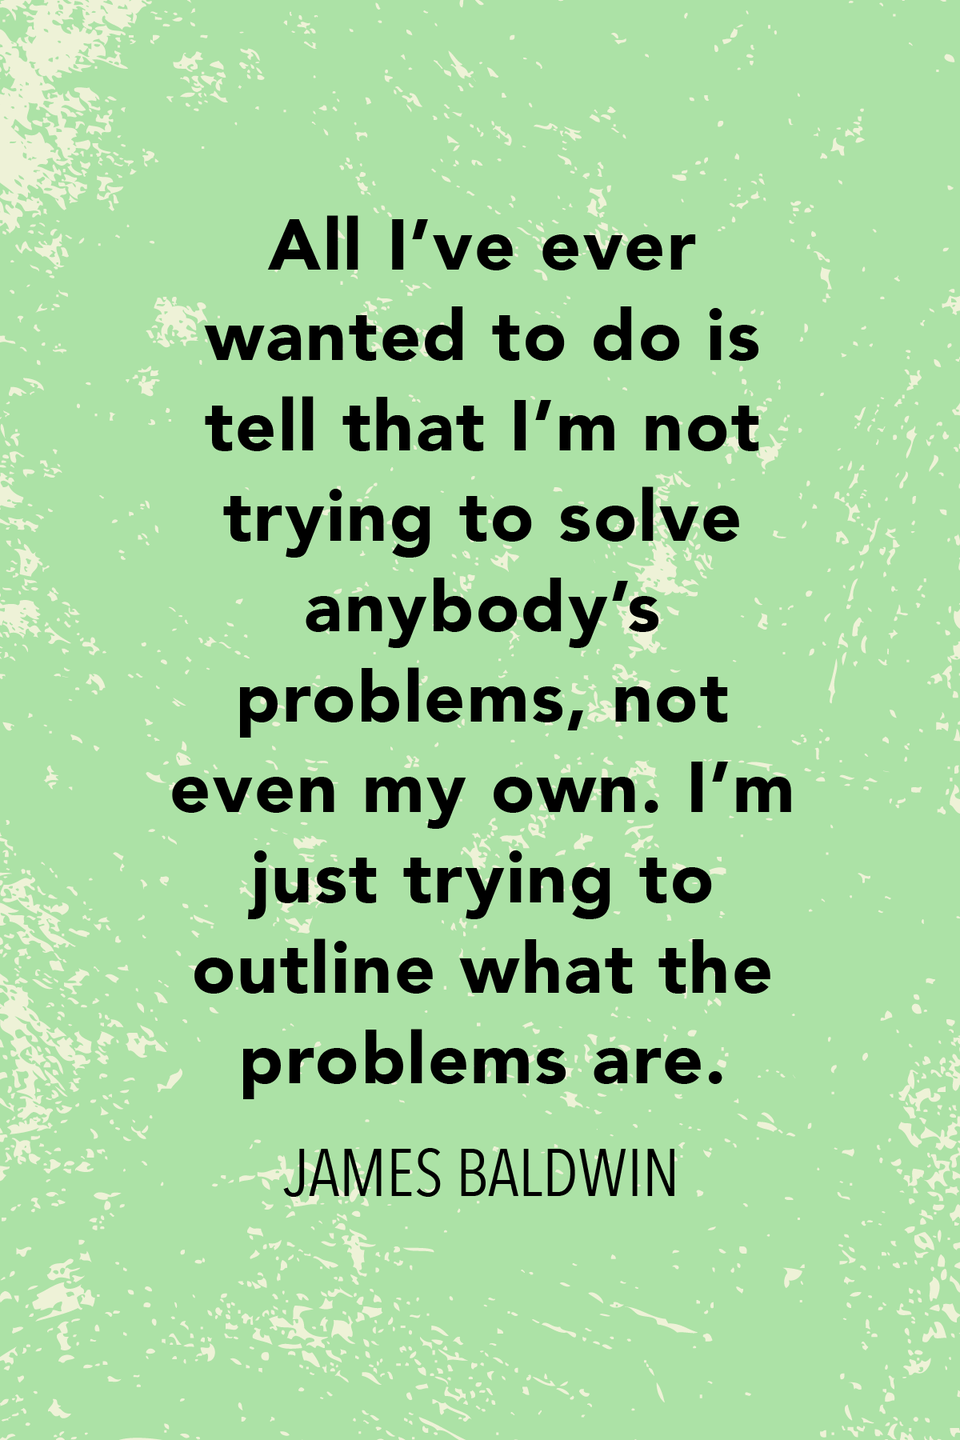 """<p>""""All I've ever wanted to do is tell that I'm not trying to solve anybody's problems, not even my own. I'm just trying to outline what the problems are,"""" Baldwin said in a <a href=""""https://books.google.com/books?id=mEkEAAAAMBAJ&pg=PA89&lpg=PA89&dq=All+I%E2%80%99ve+ever+wanted+to+do+is+tell+that+I%E2%80%99m+not+trying+to+solve+baldwin&source=bl&ots=CVxH3vlS3q&sig=ACfU3U1qLsi_Juyj1Nx_08cELb6mNYWSXg&hl=en&sa=X&ved=2ahUKEwiU7aroqvXpAhXaRjABHSCBBdAQ6AEwAXoECAoQAQ#v=onepage&q=All%20I%E2%80%99ve%20ever%20wanted%20to%20do%20is%20tell%20that%20I%E2%80%99m%20not%20trying%20to%20solve%20baldwin&f=false"""" rel=""""nofollow noopener"""" target=""""_blank"""" data-ylk=""""slk:May 1963 profile in Life Magazine."""" class=""""link rapid-noclick-resp"""">May 1963 profile in <em>Life</em> Magazine.</a></p>"""